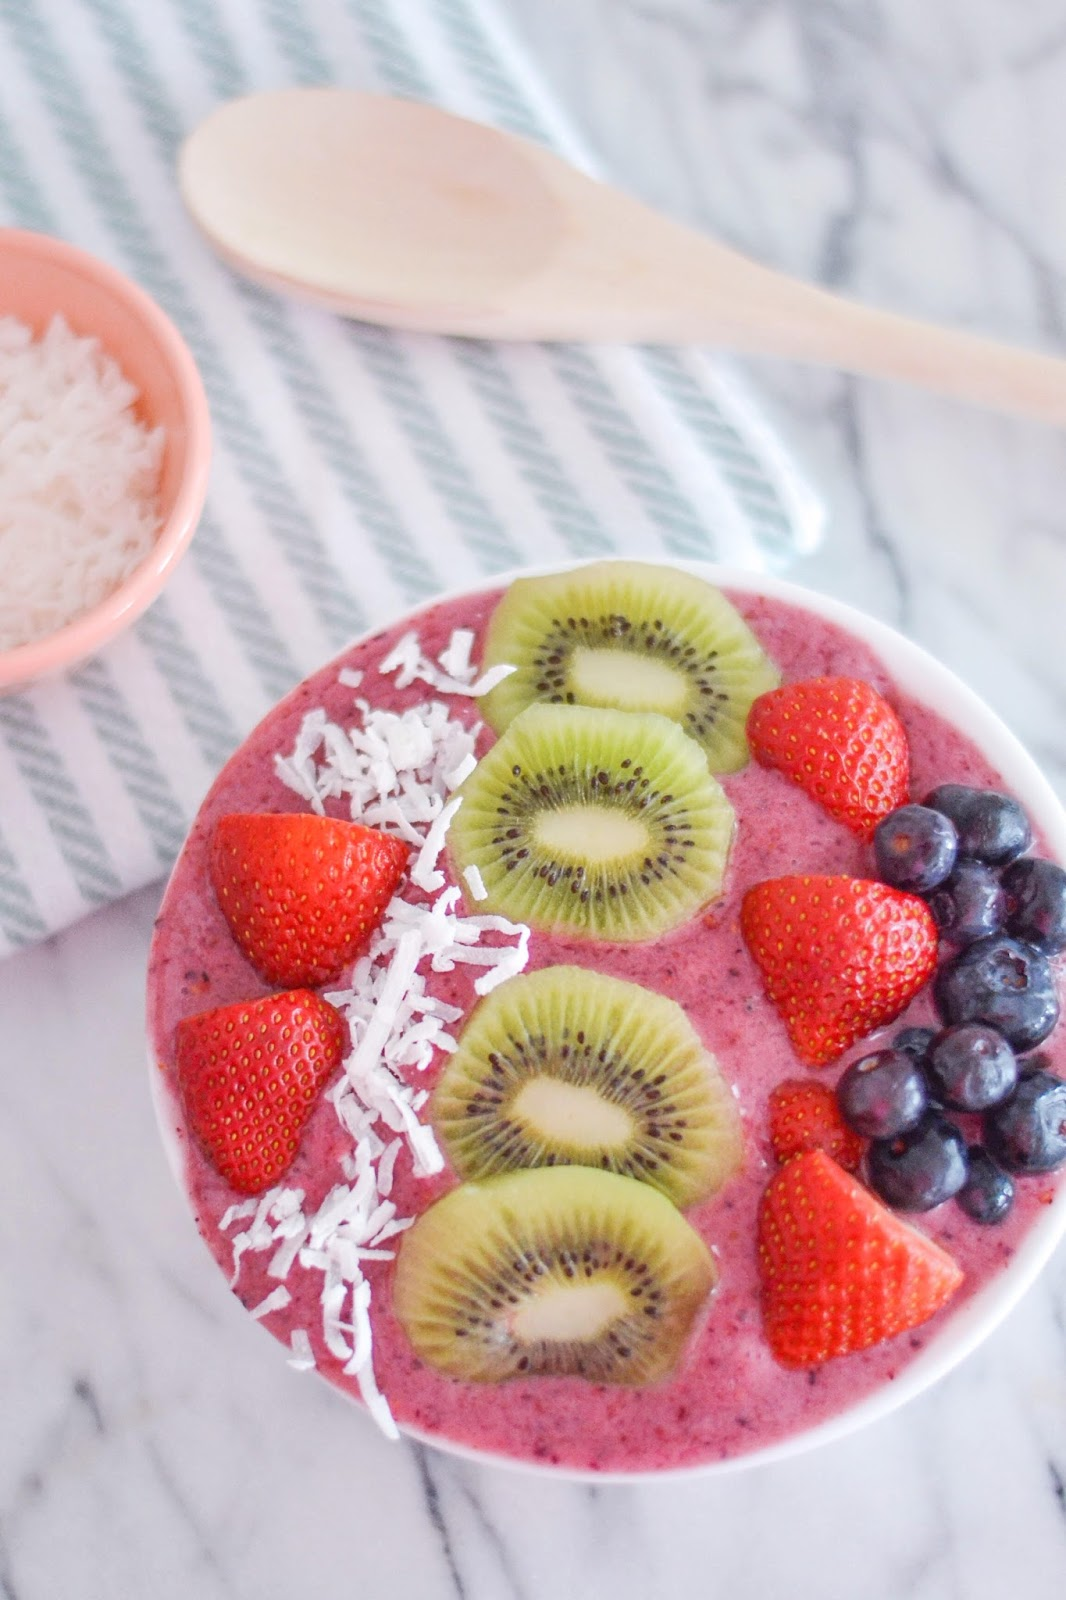 acai bowl recipe without acai powder